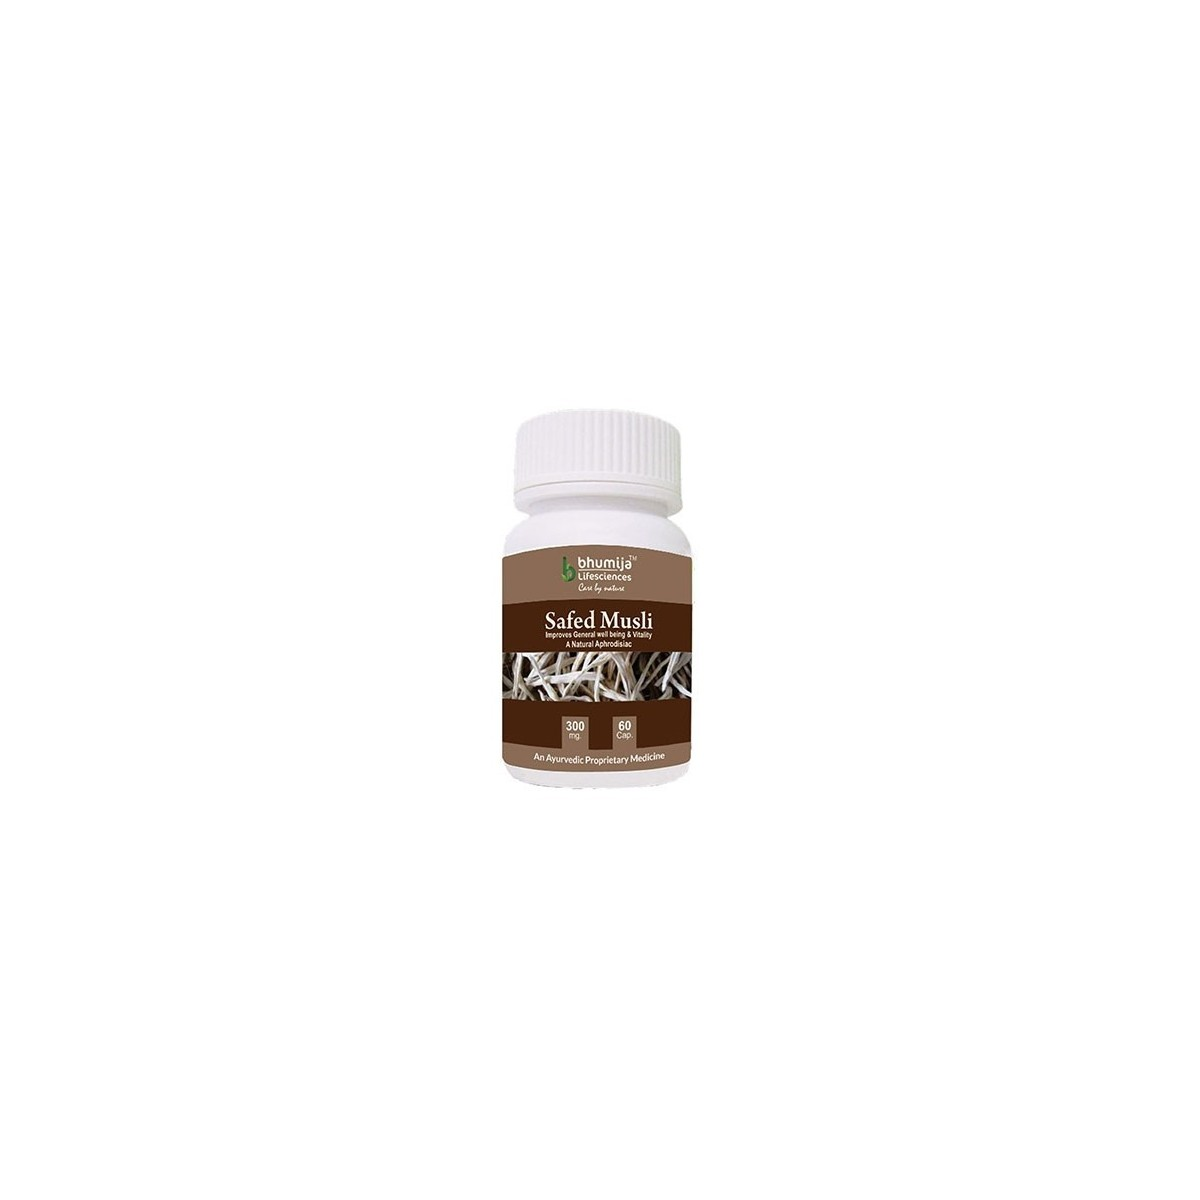 Bhumija Lifesciences Safed Musli Capsules 60